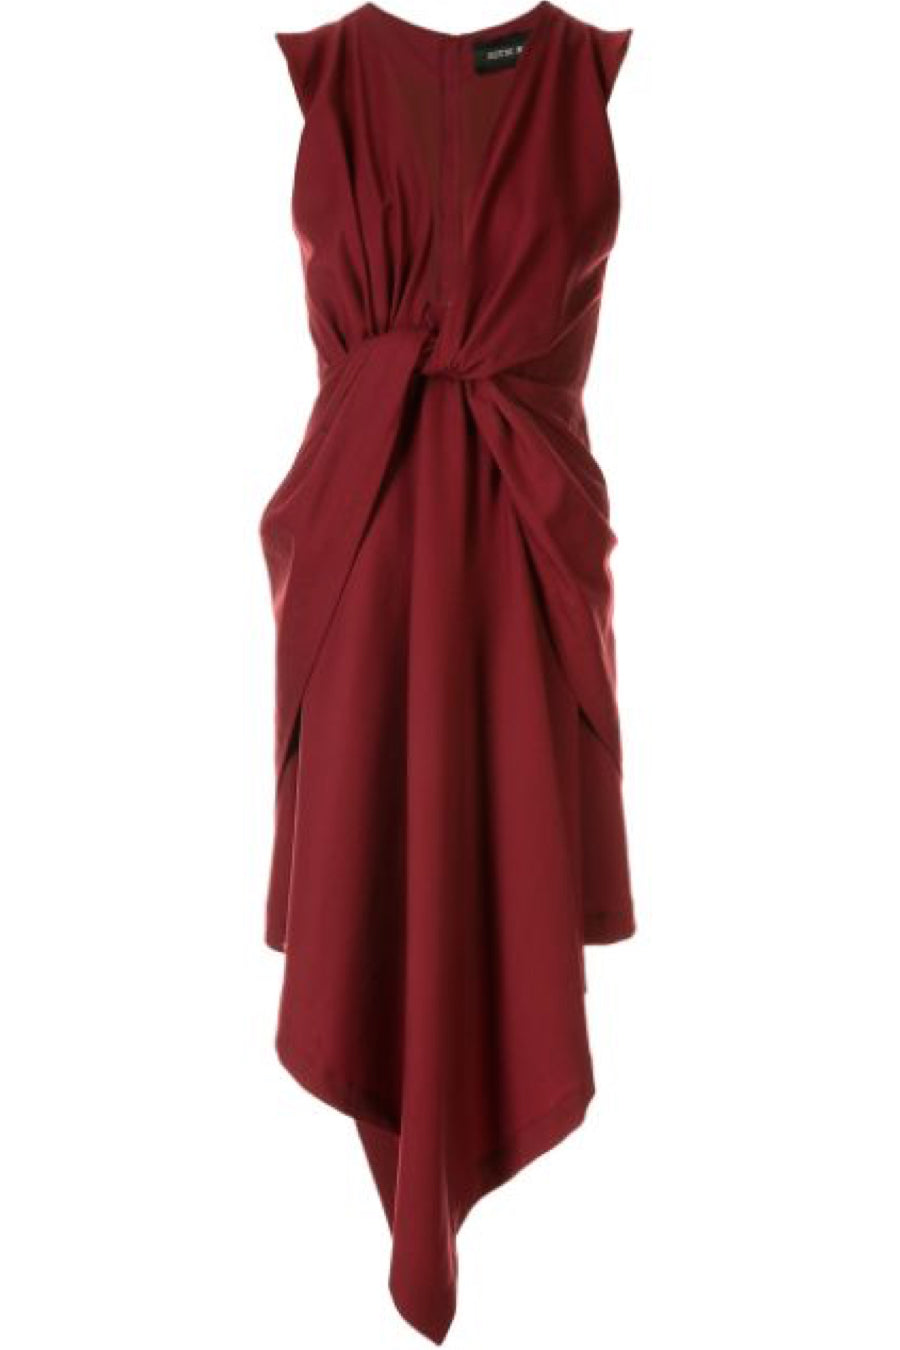 Ember Twist Dress